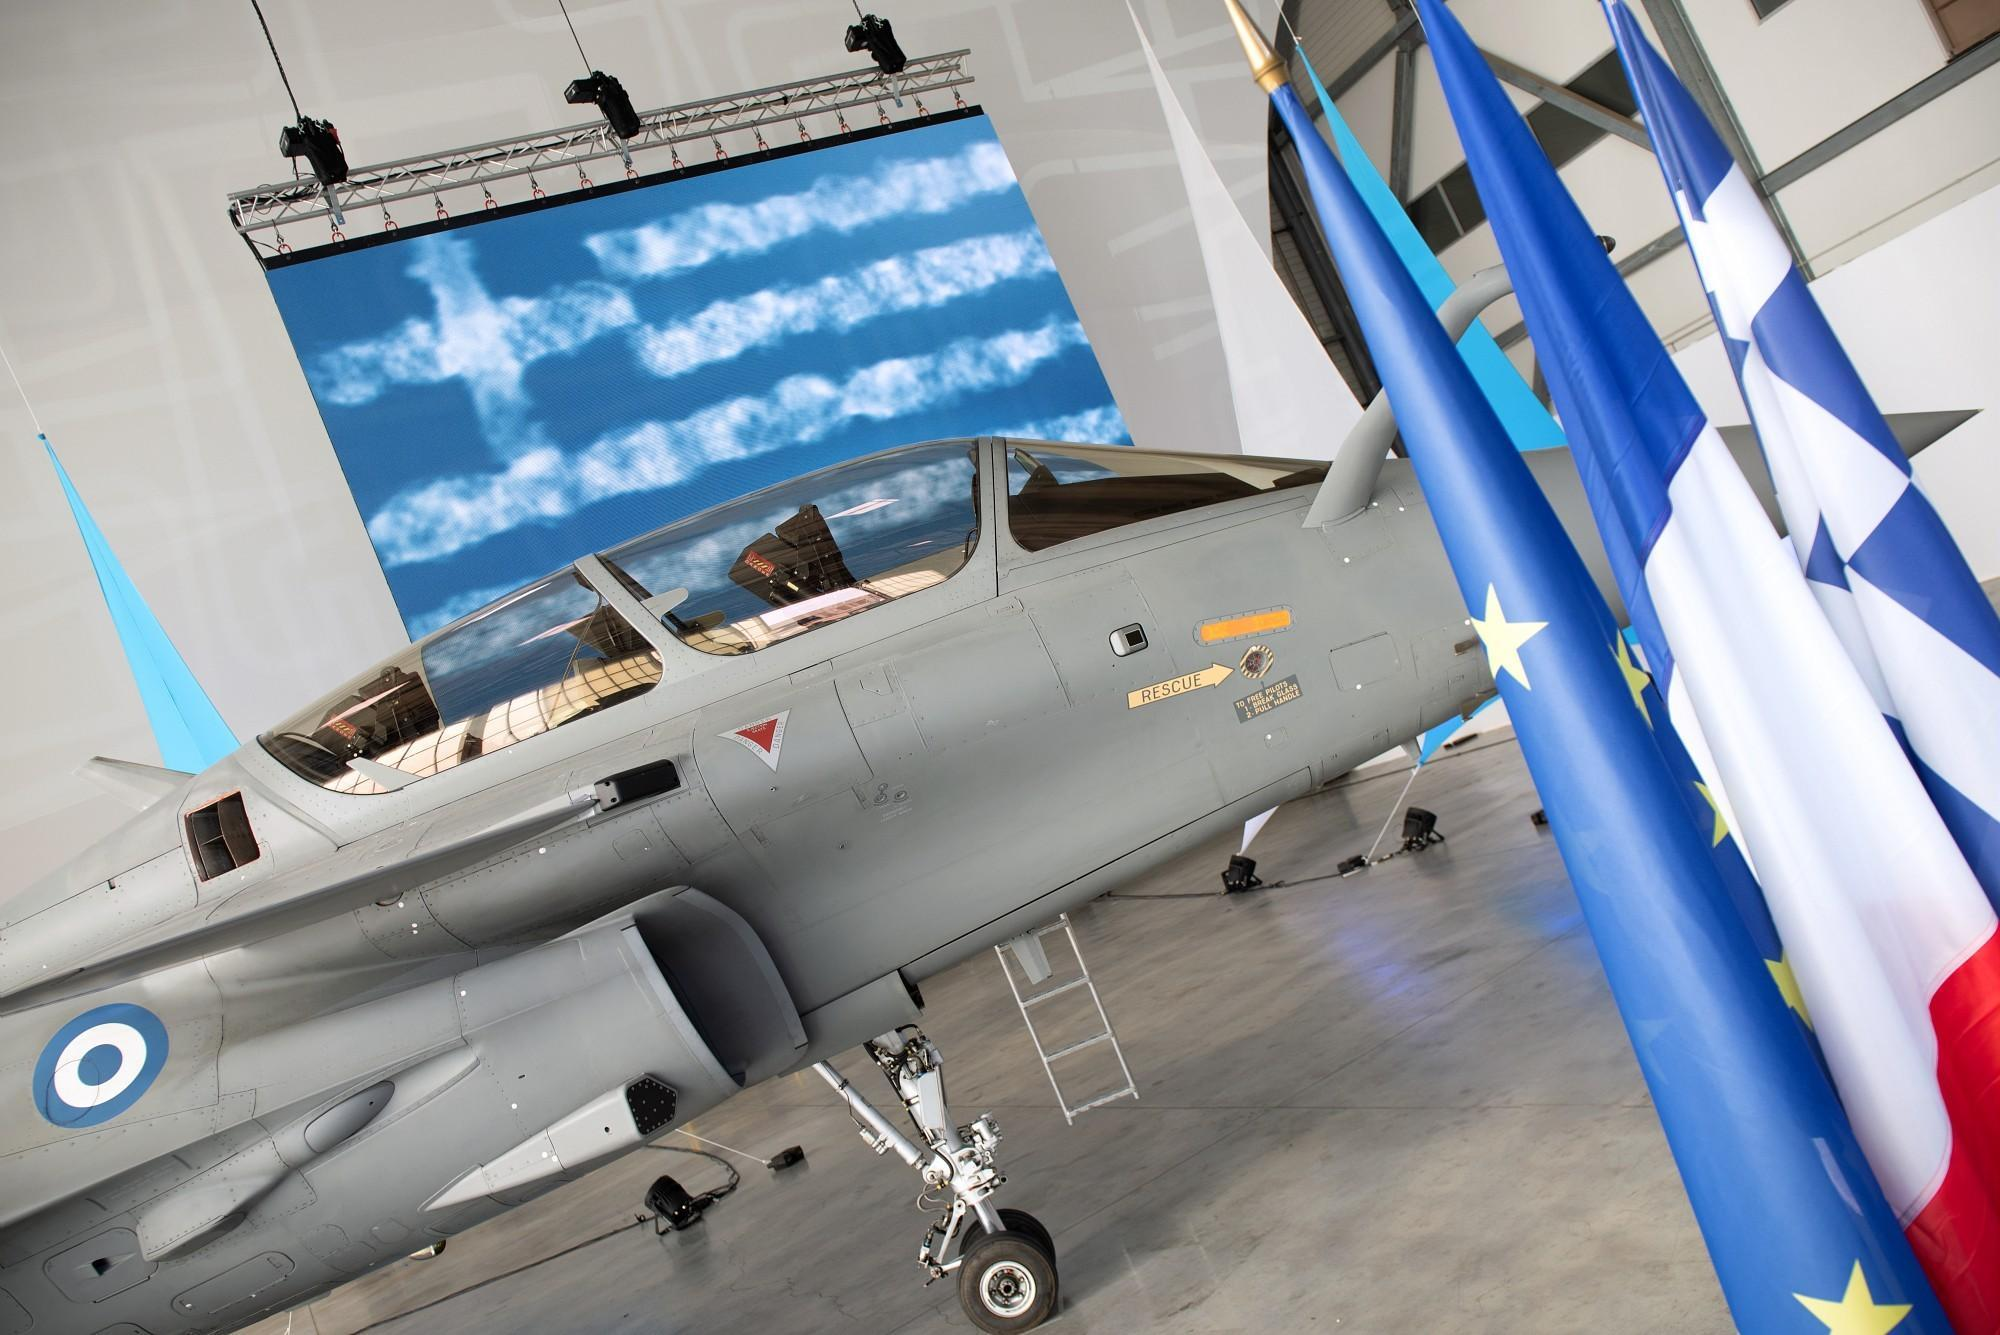 The Hellenic Air Force (HAF) has taken delivery of its first Dassault Aviation Rafale fighter jet at the airframer's Flight Test Center in Istres